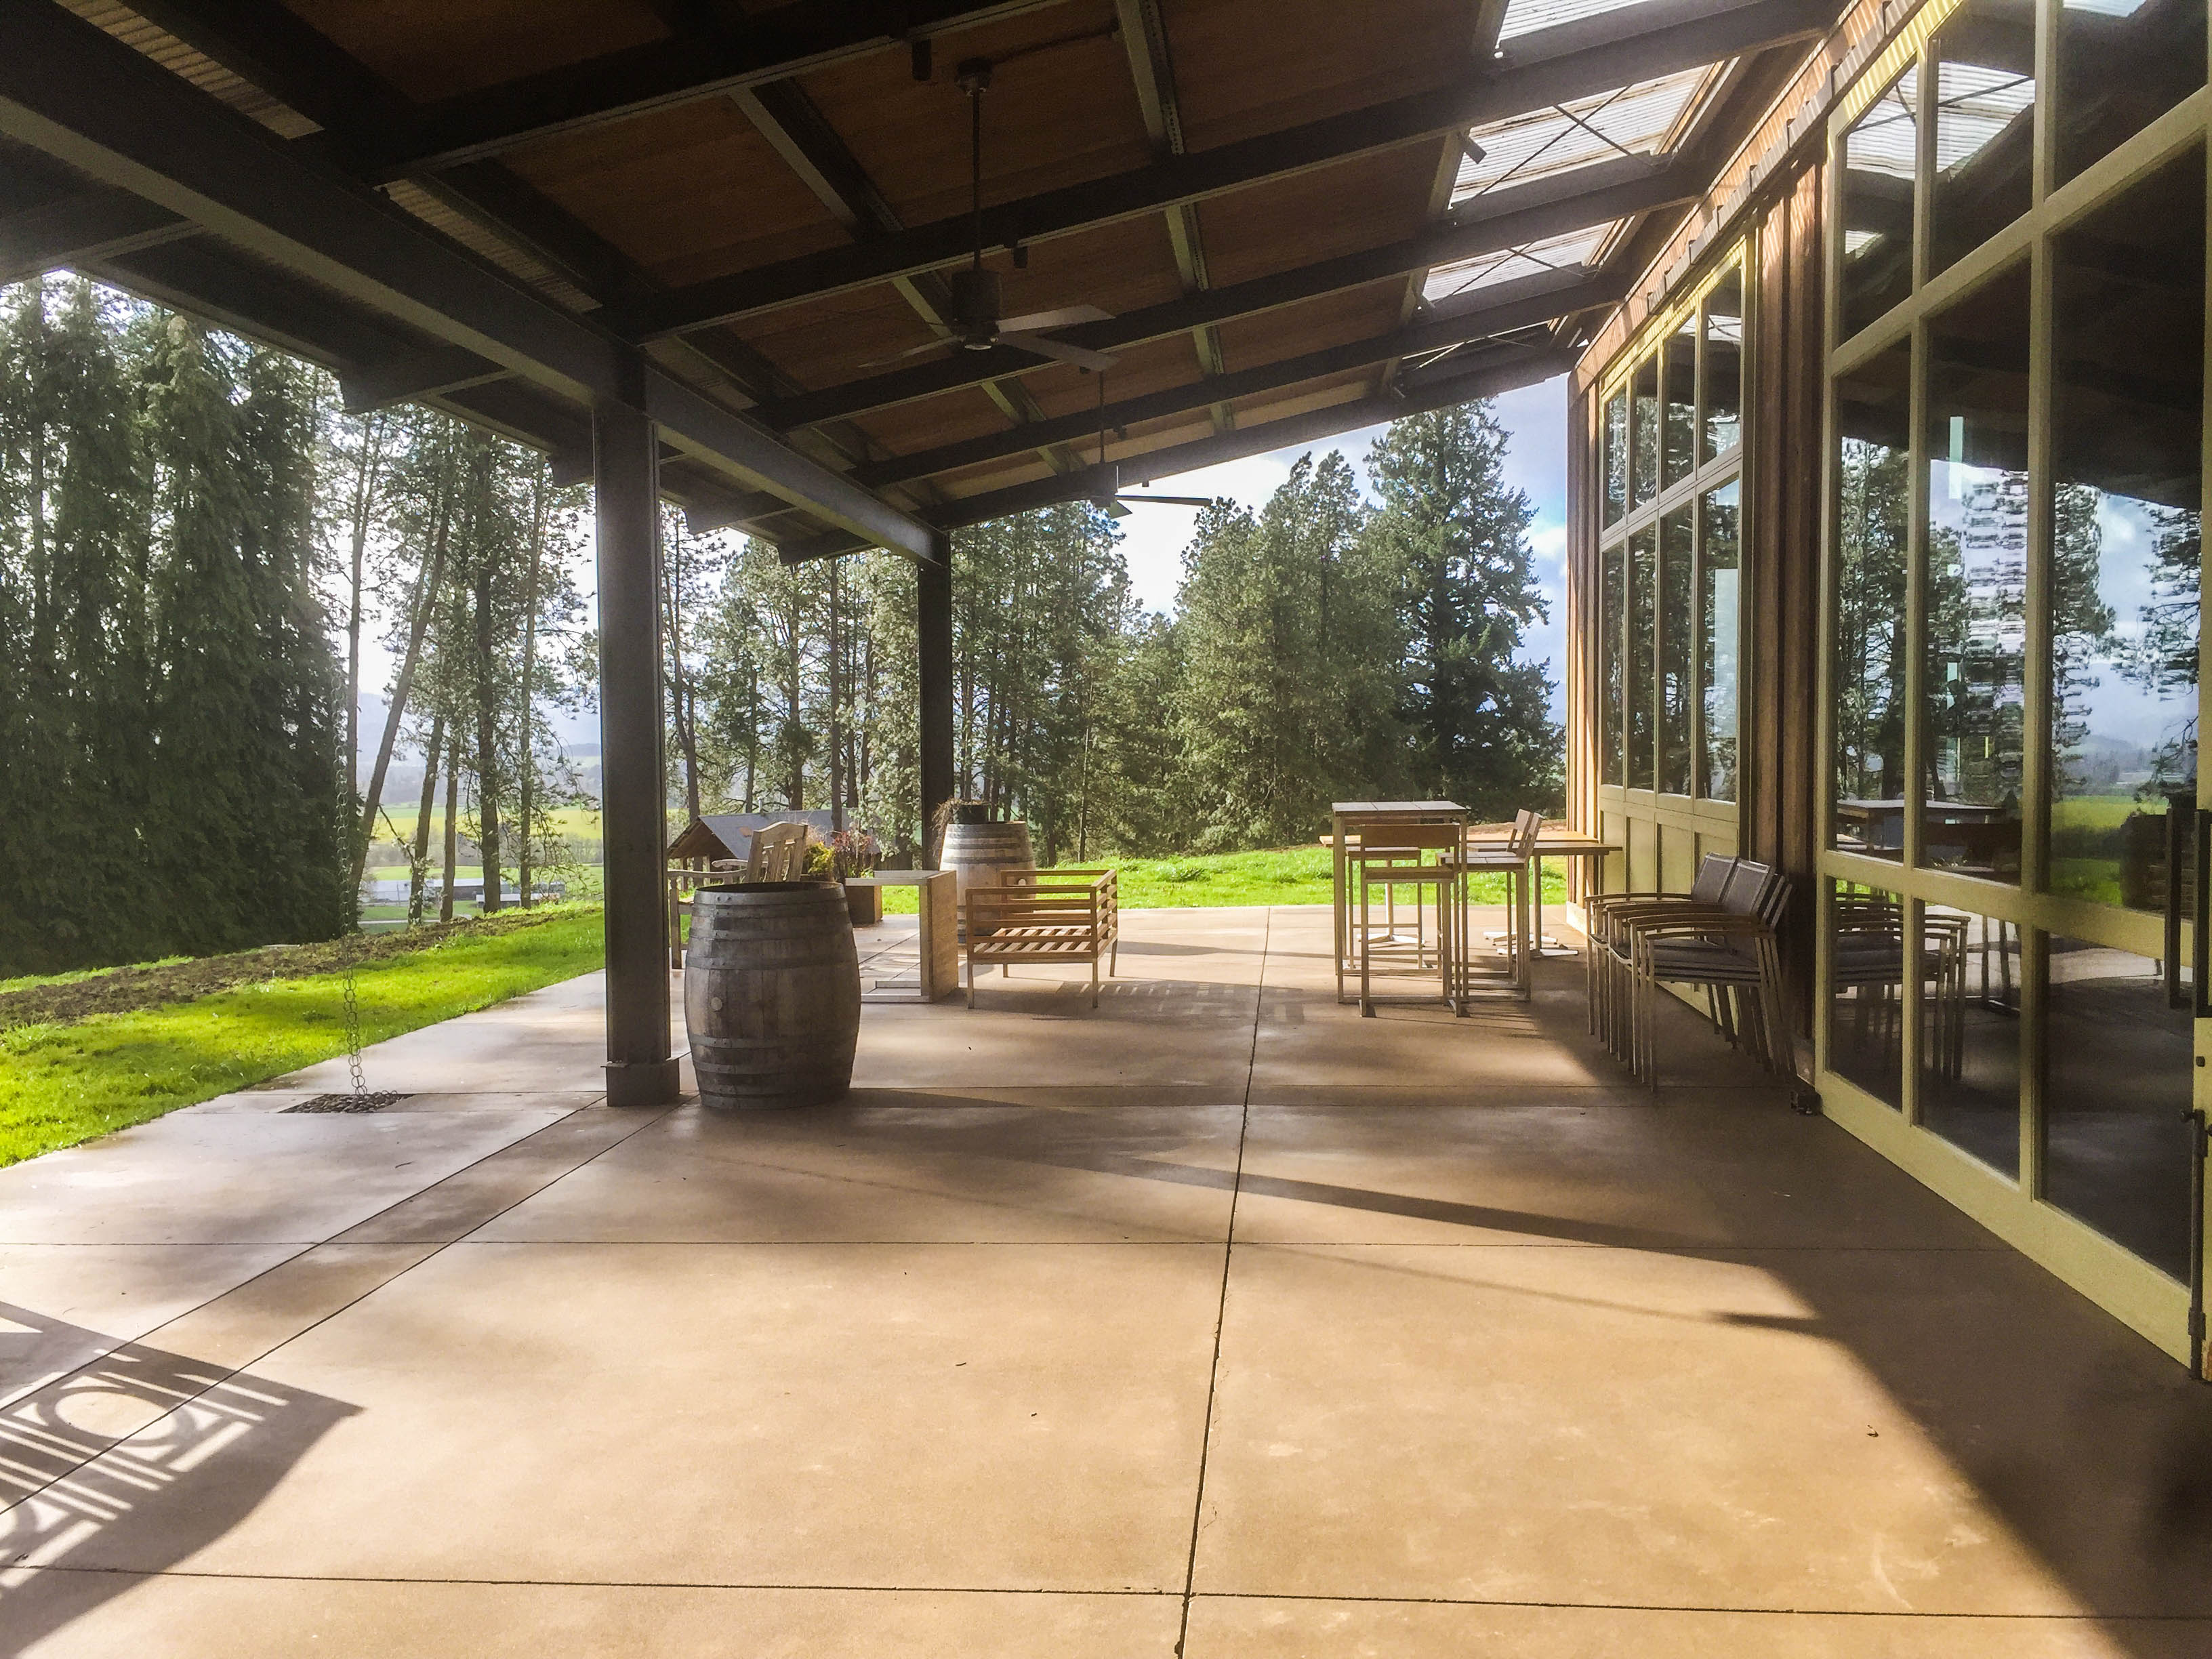 Oregon Wine Guide: Soter Vineyards